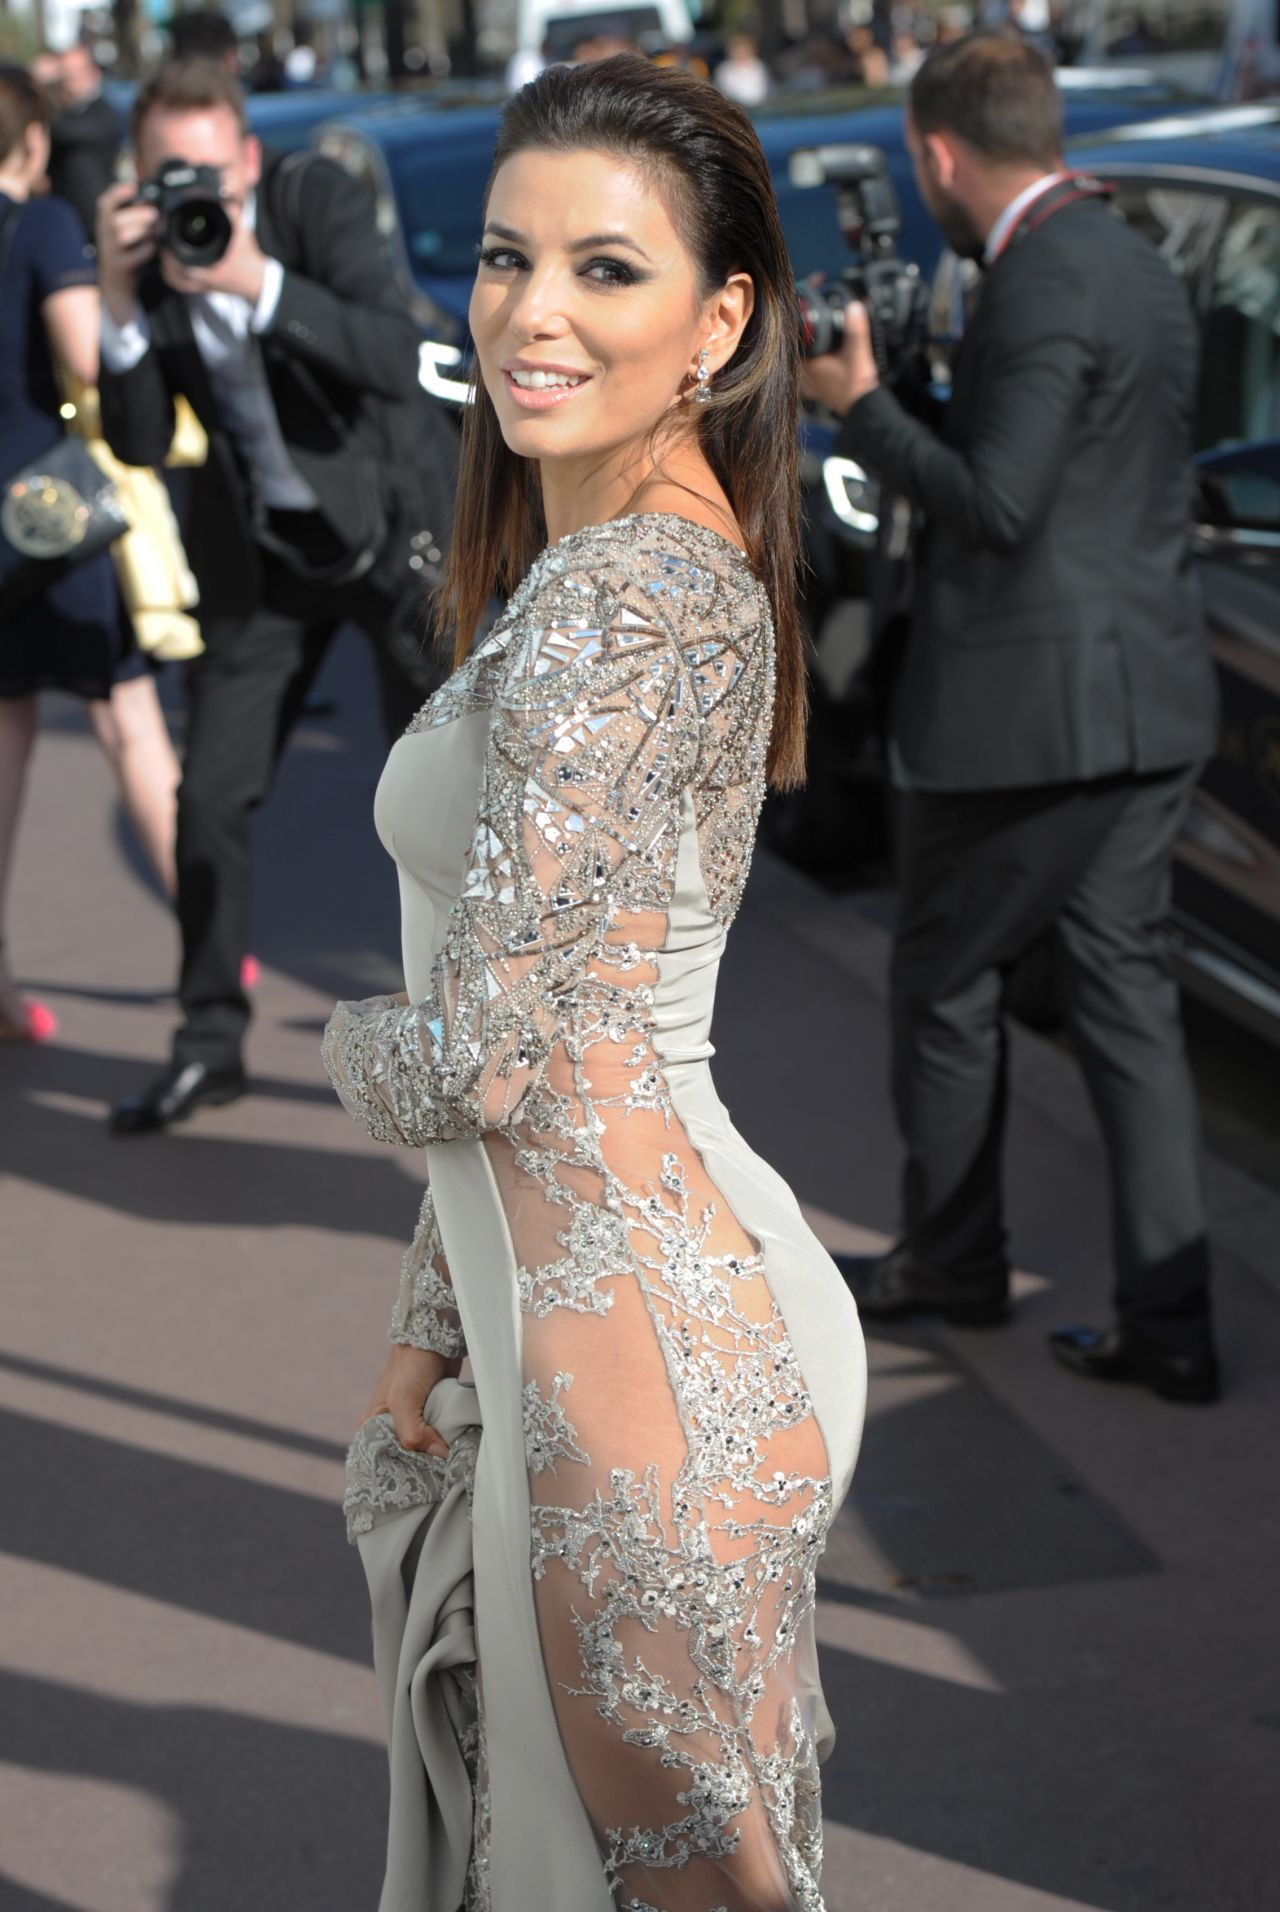 Happy birthday eva longoria tigerdroppings image httpcelebmafiawp contentuploads201505eva longoria leaving the martinez hotel in cannes may 20151g voltagebd Gallery